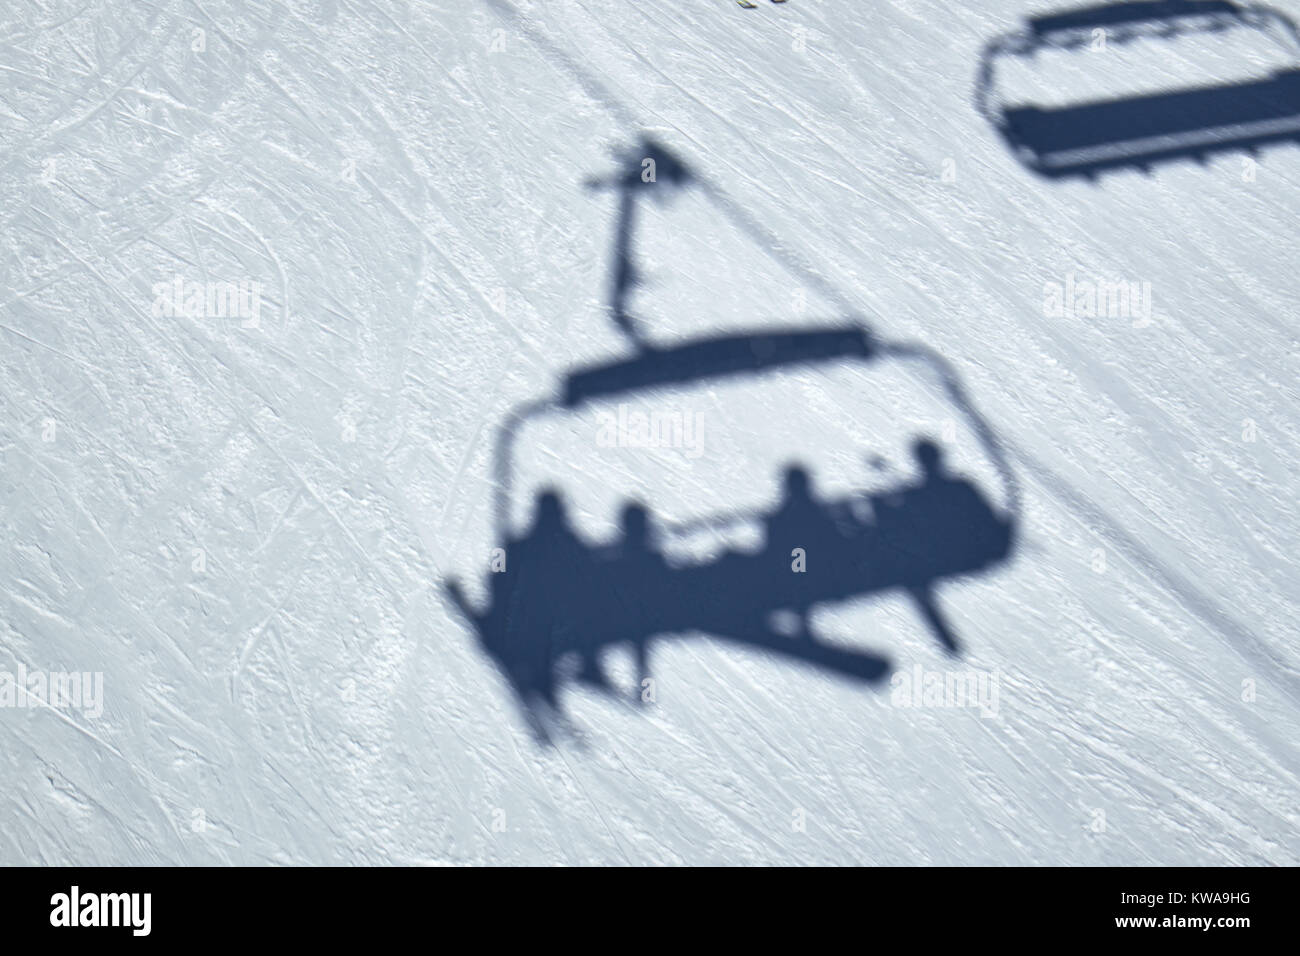 Shadow of a chairlift gliding over the snow on the ground at Ski Carousel Winterberg - Stock Image